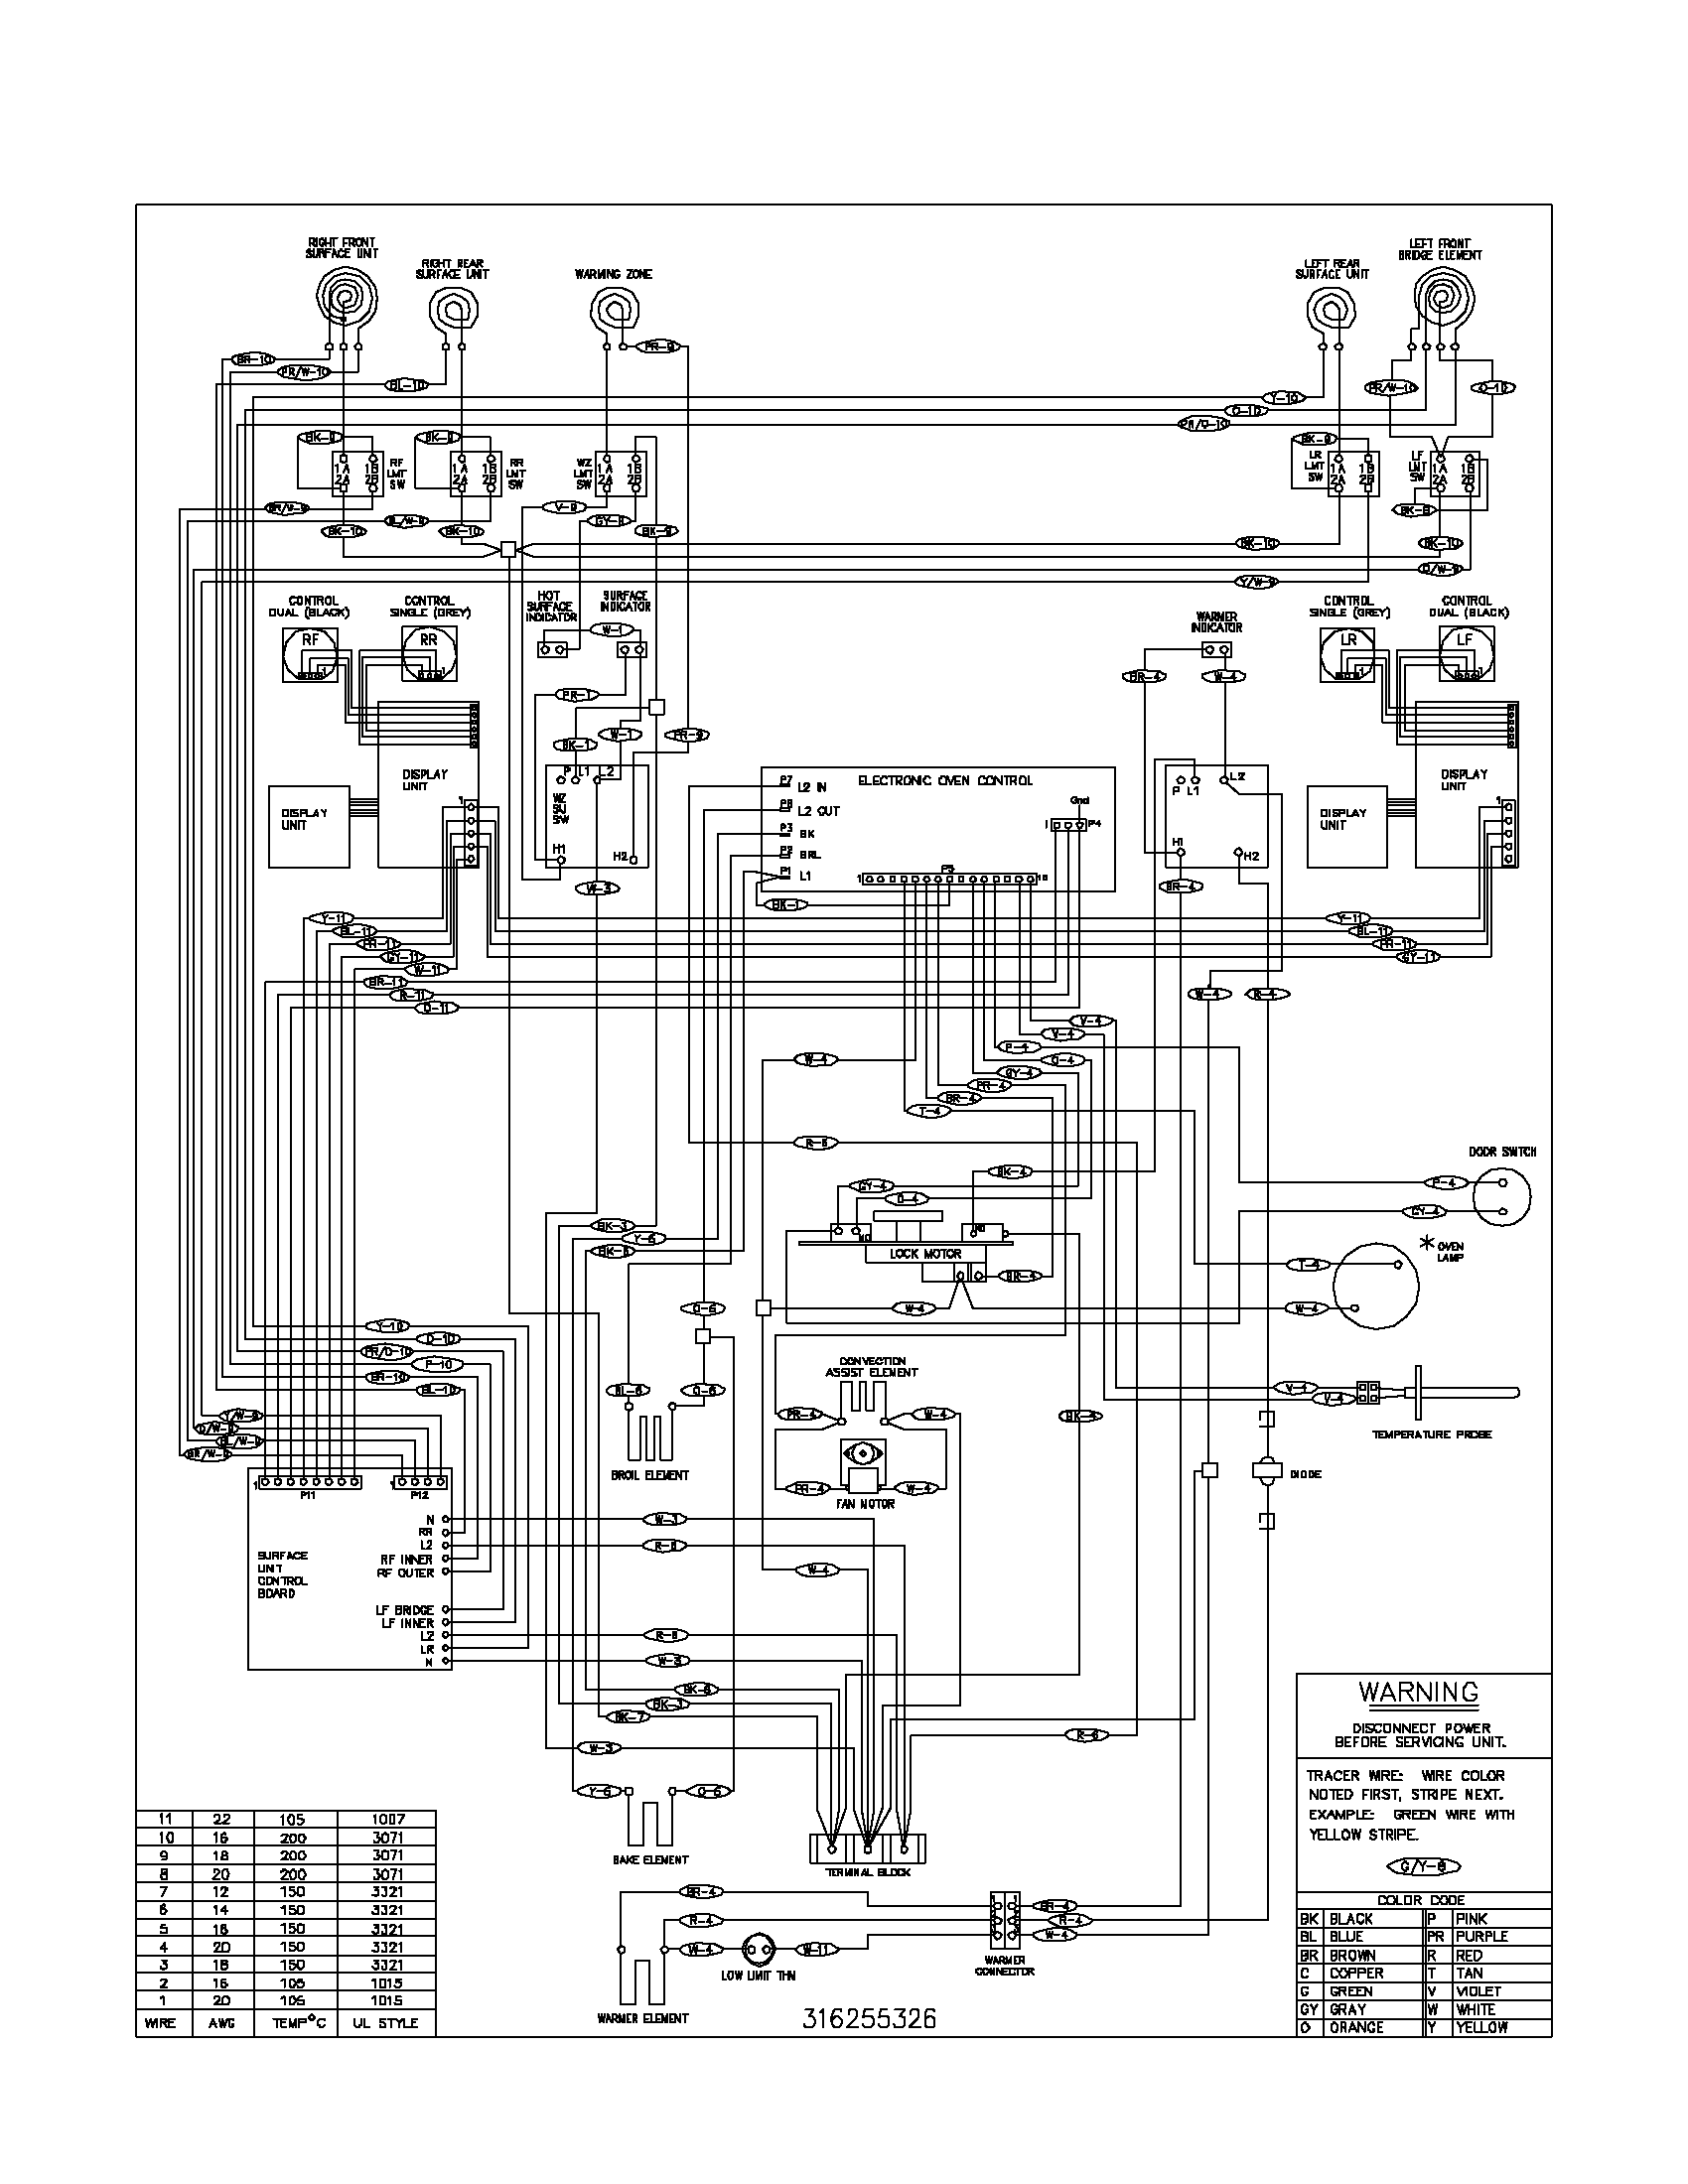 wiring diagram for frigidaire air conditioner with Electric Furnace Wiring Diagrams E2eb 015ha on Goldstar Air Conditioner Wiring Diagrams together with Kitchenaid Dryer Wiring Diagram as well Washing Machine Wiring Diagram Pdf also Electric Furnace Wiring Diagrams E2eb 015ha additionally Freezer Thermostat Wiring Diagram.